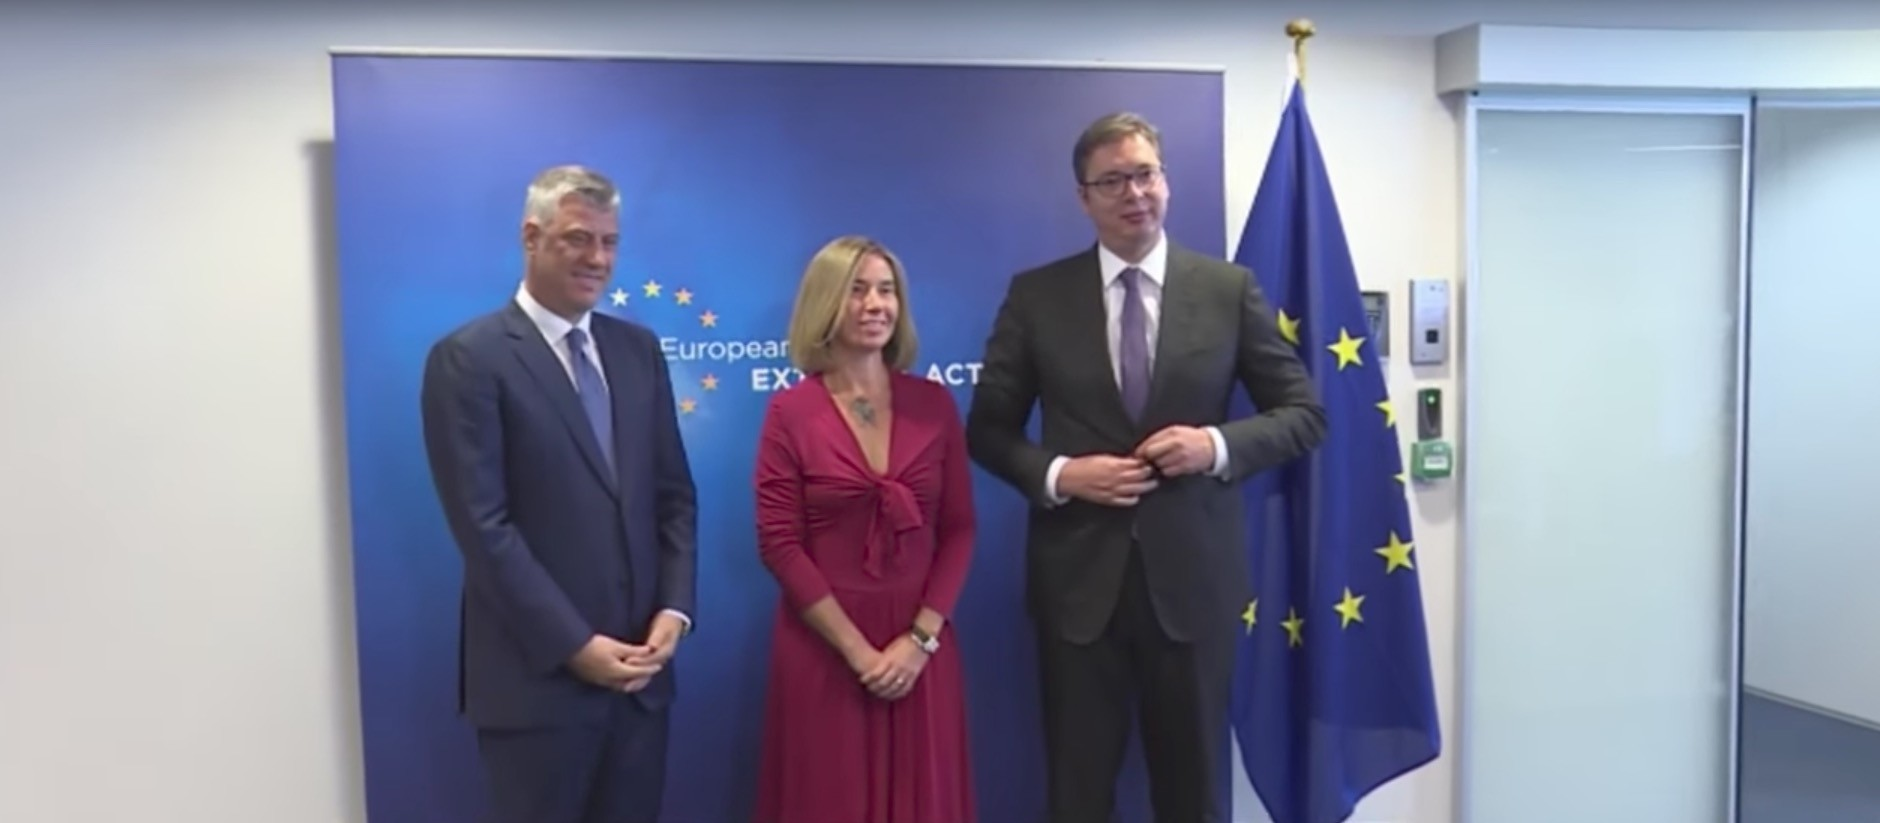 This screengrab shows Kosovo's President Thaci (L), EU's Mogherini (C) and Serbian President Vucic posing for a photo in Brussels, 3 July 2017.